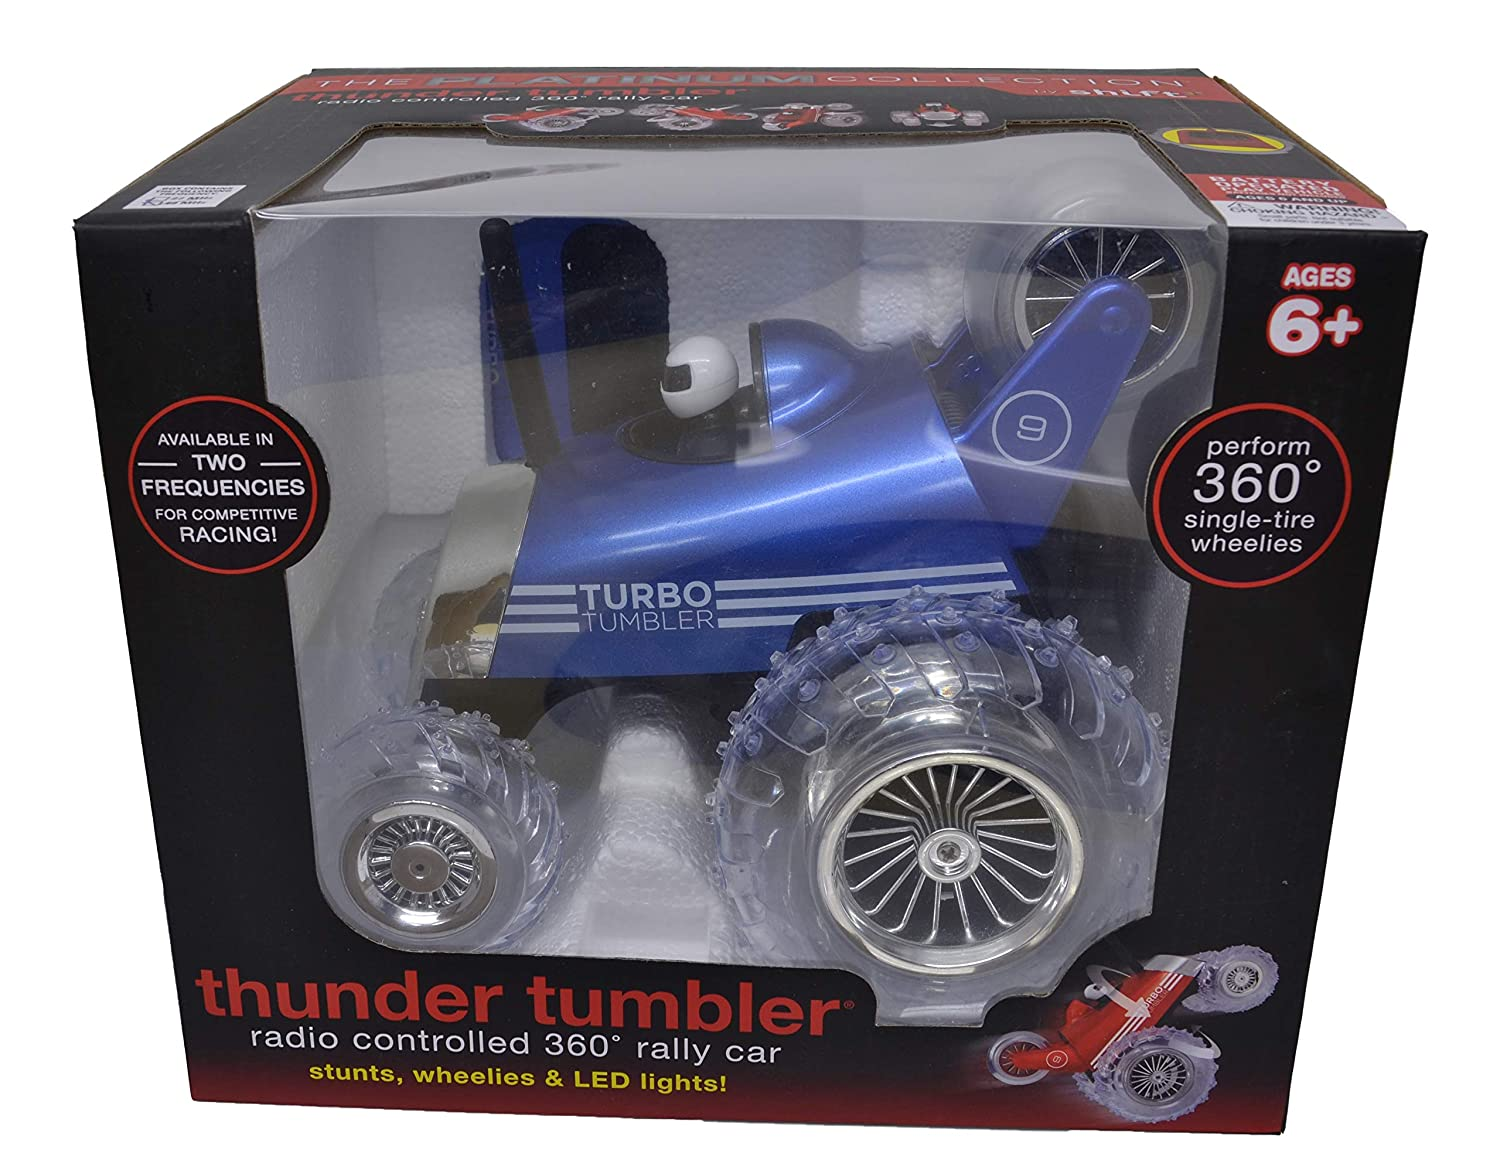 Amazon.com: The Platinum Collection By Shift Rc Turbo Tumbler Car (Blue): Clothing